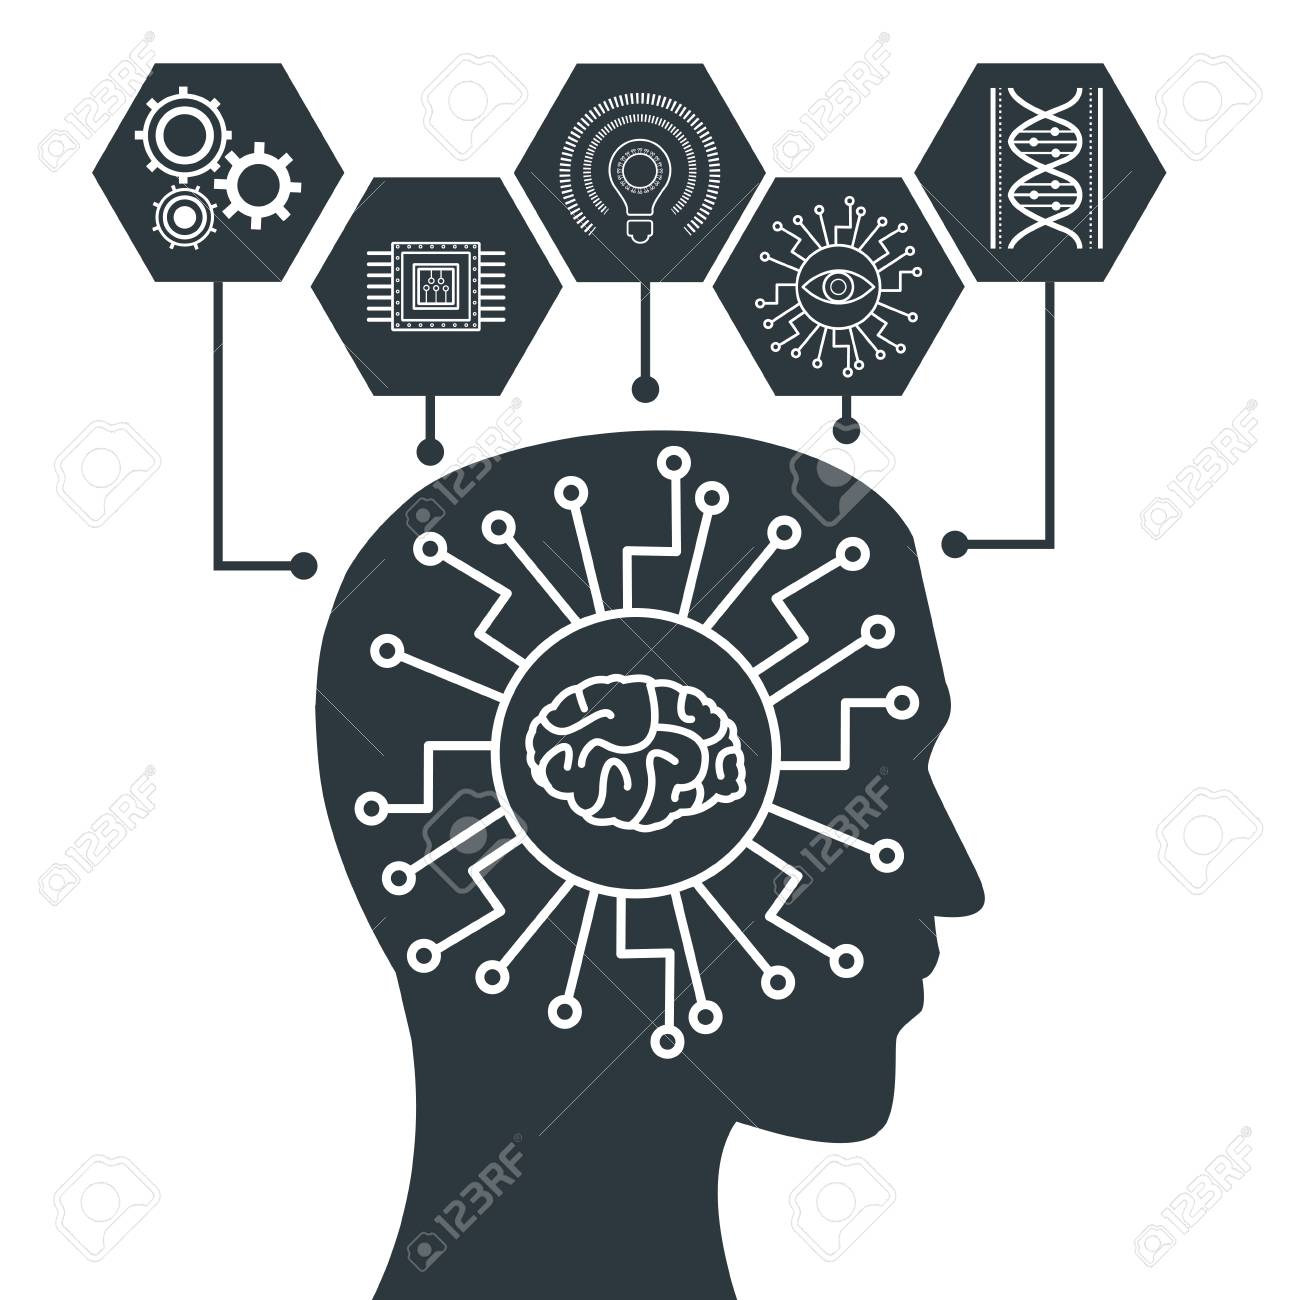 Robot artificial intelligence icon vector illustration graphic design Stock Vector - 92426236